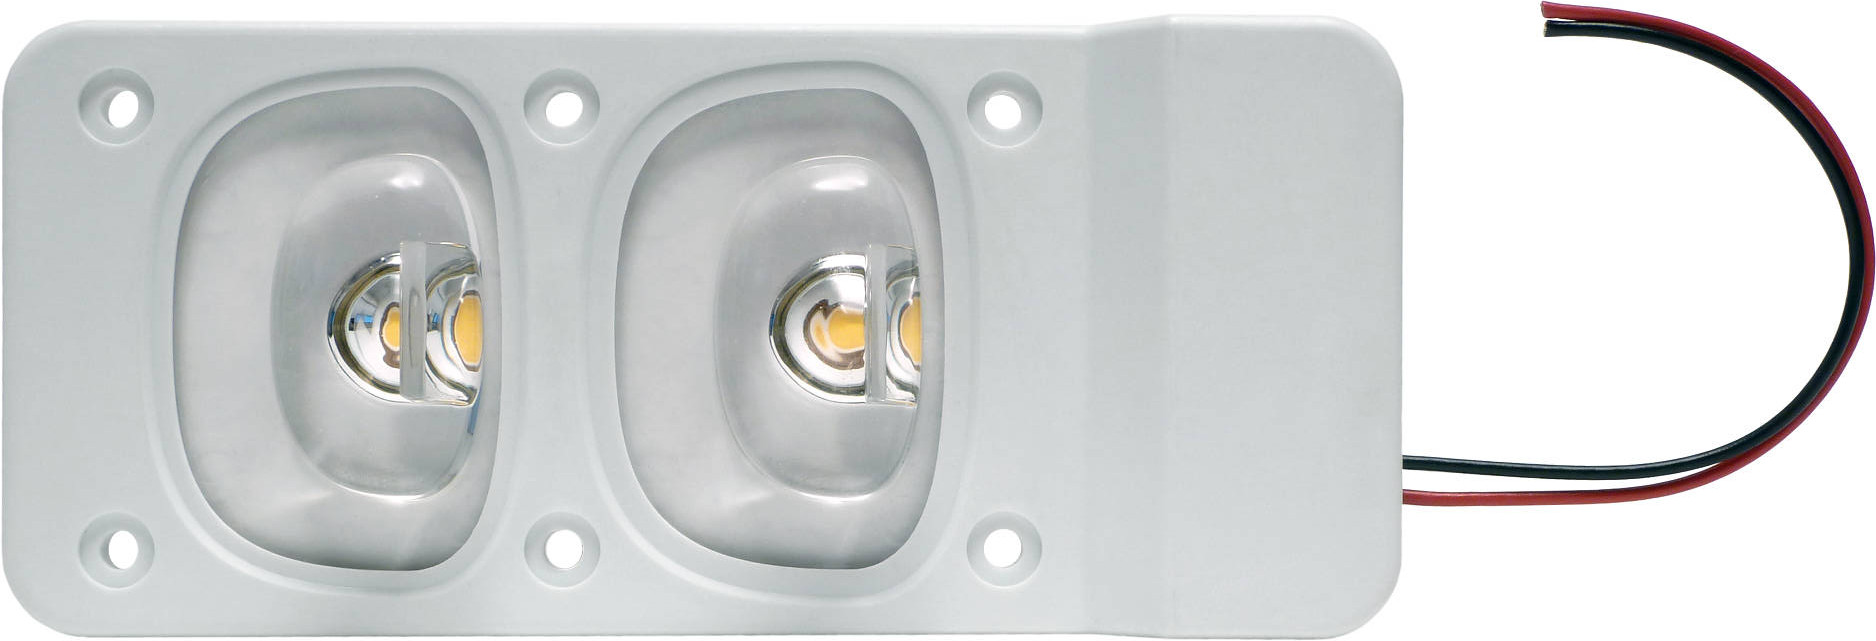 Led light engine is sealed for outdoors called outdoor lighting module olm it integrates leds optics and environmental protection in a package that can be screwed to a heatsink freerunsca Choice Image